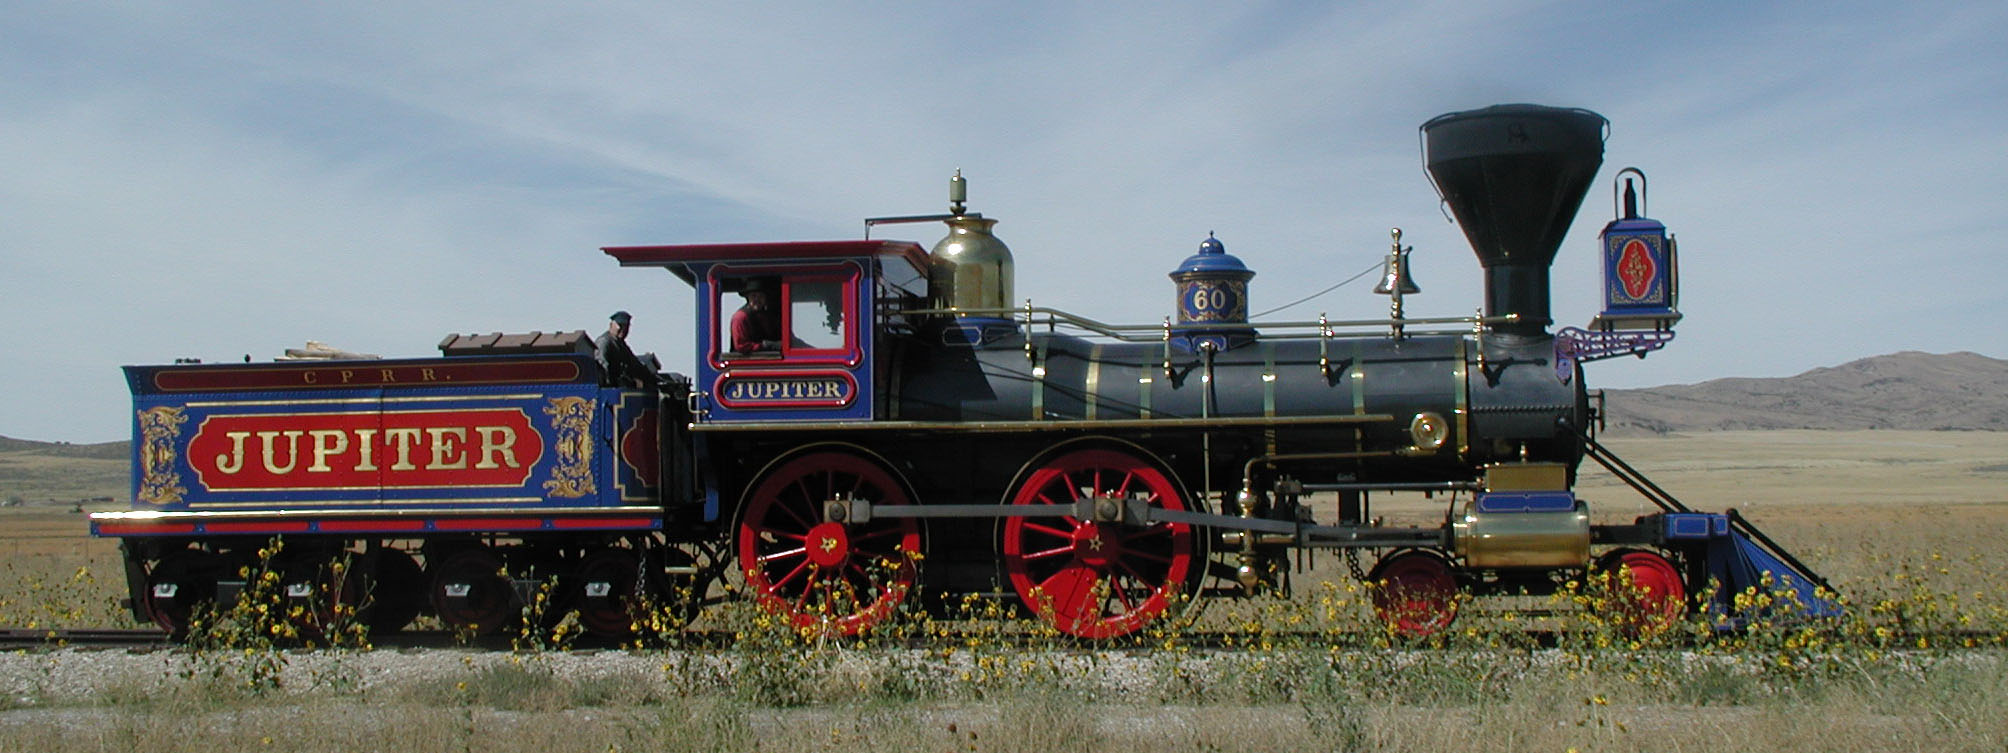 Everlasting Steam The Story Of Jupiter And No 119 Golden Spike